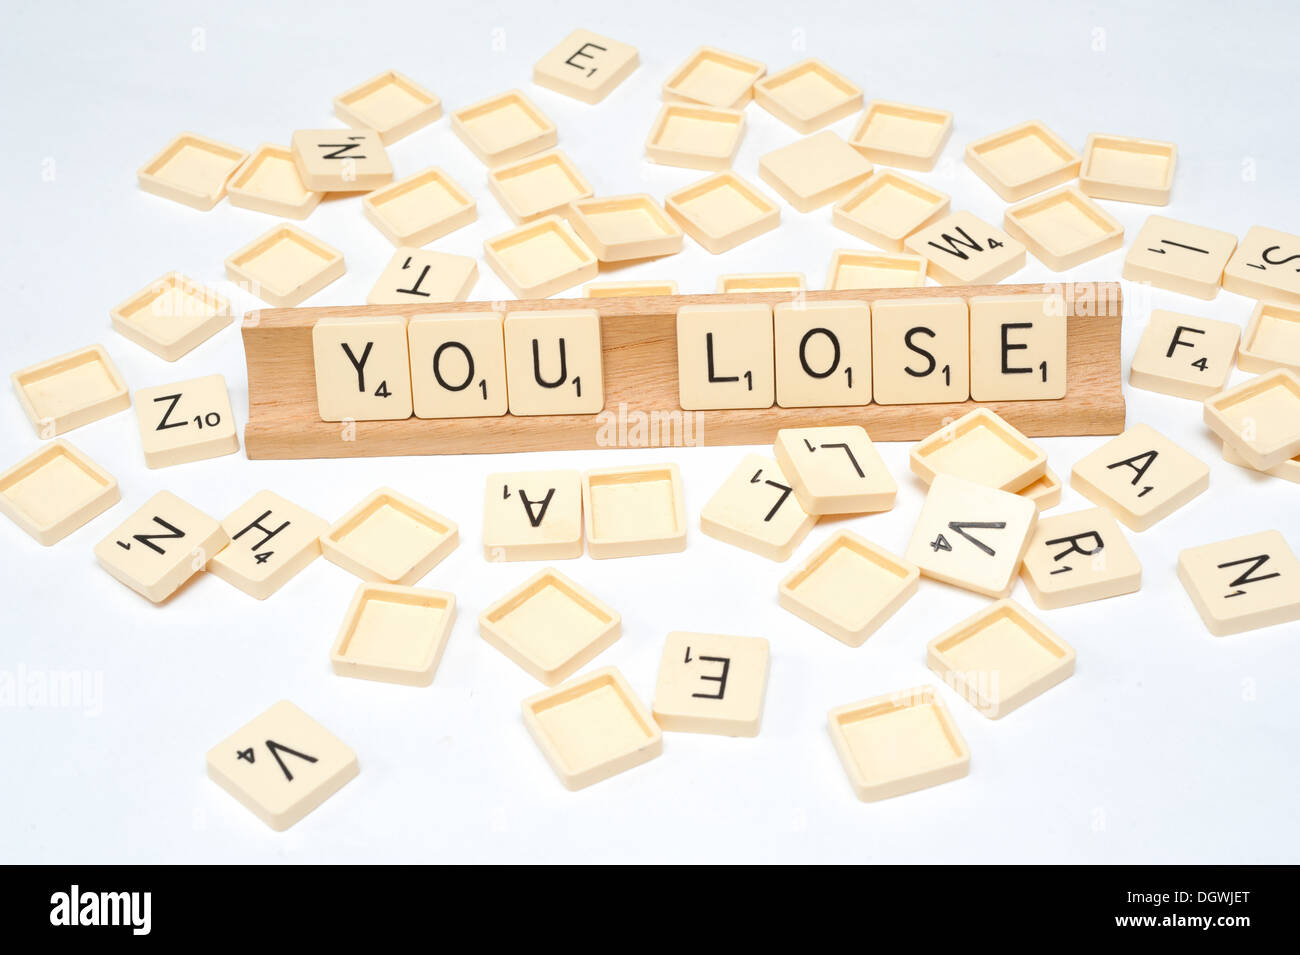 'You Lose' written in scrabble tiles - Stock Image